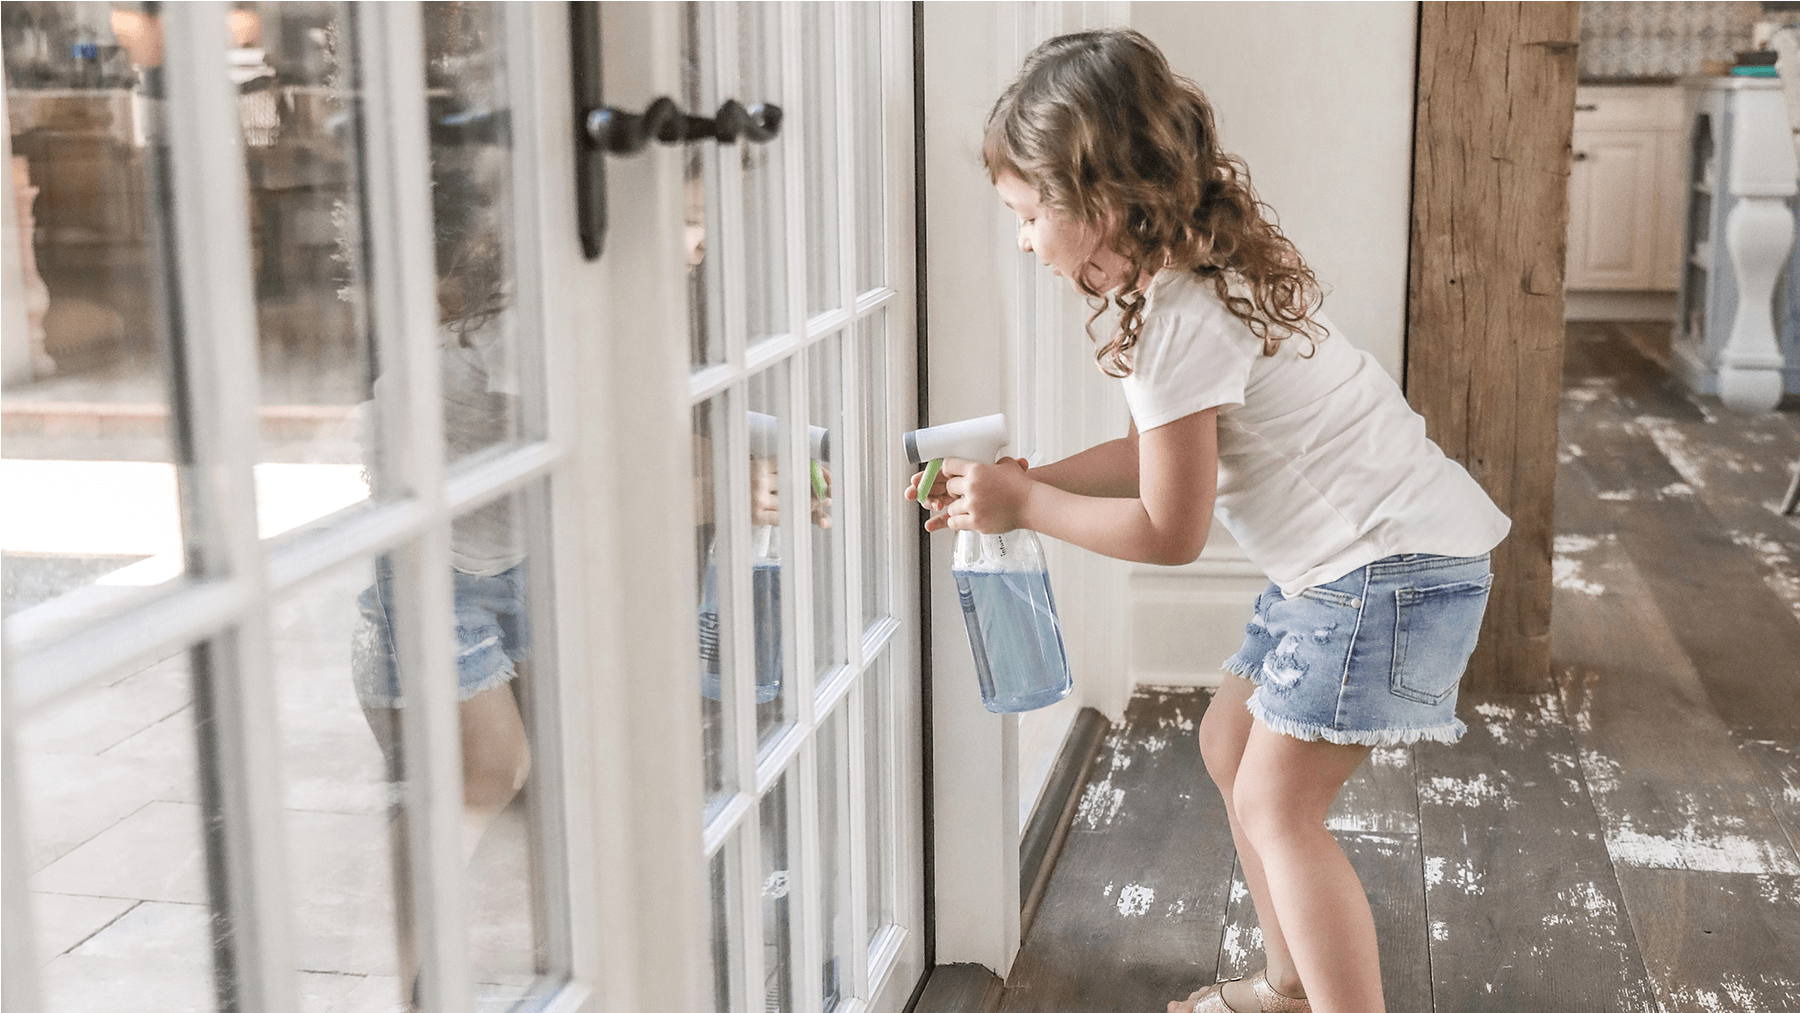 Kids help clean with Infuse Clean by Casabella